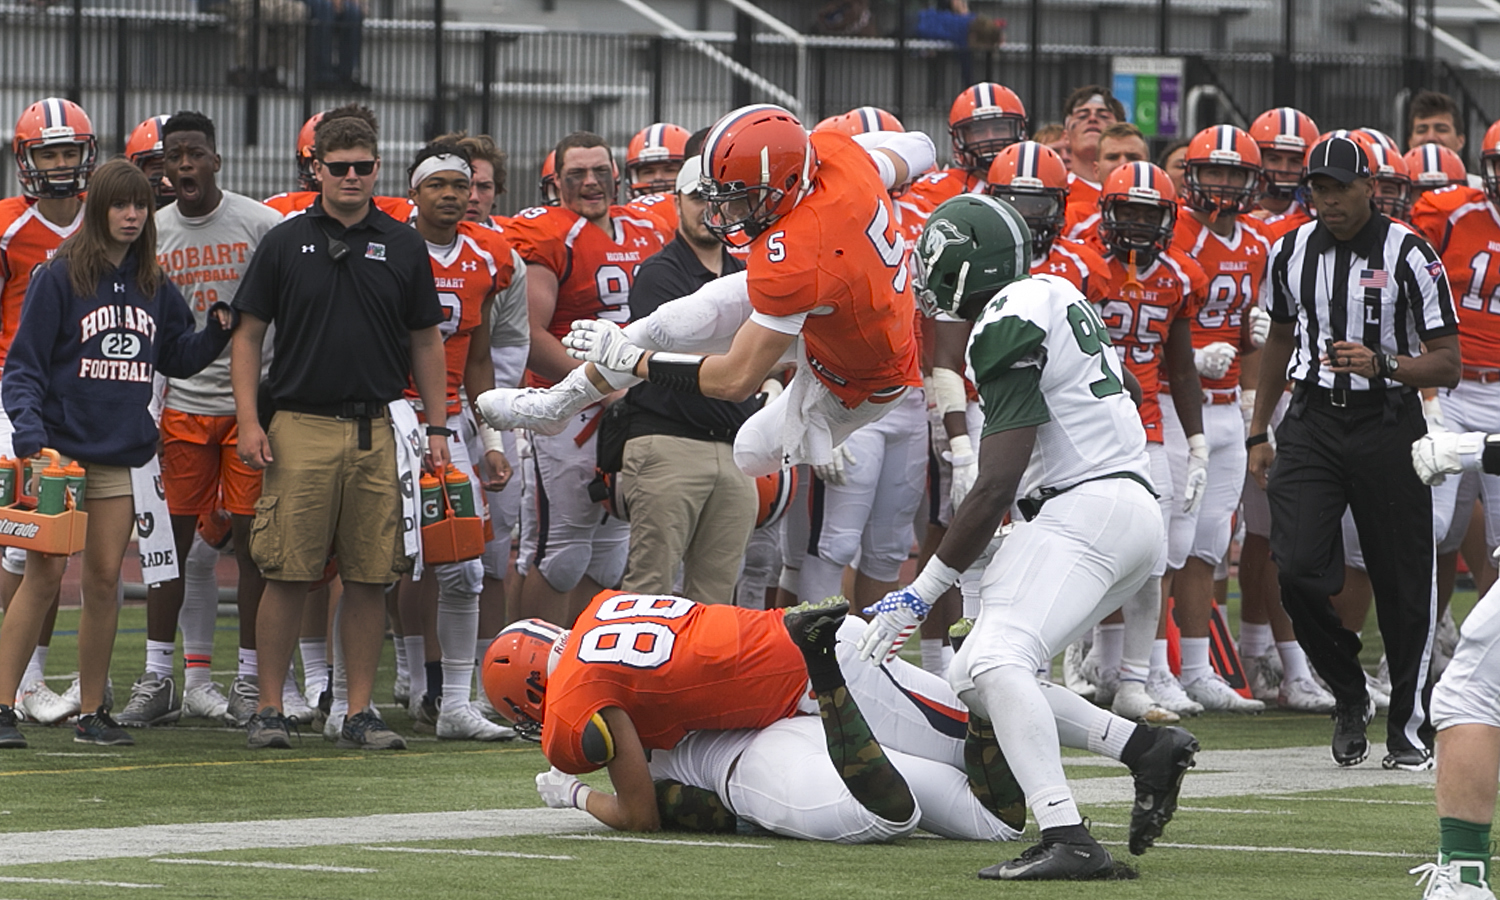 David Krewson 'X hurdles a defender during Hobart's 62-24 win over SUNY Morrosville on Saturday.